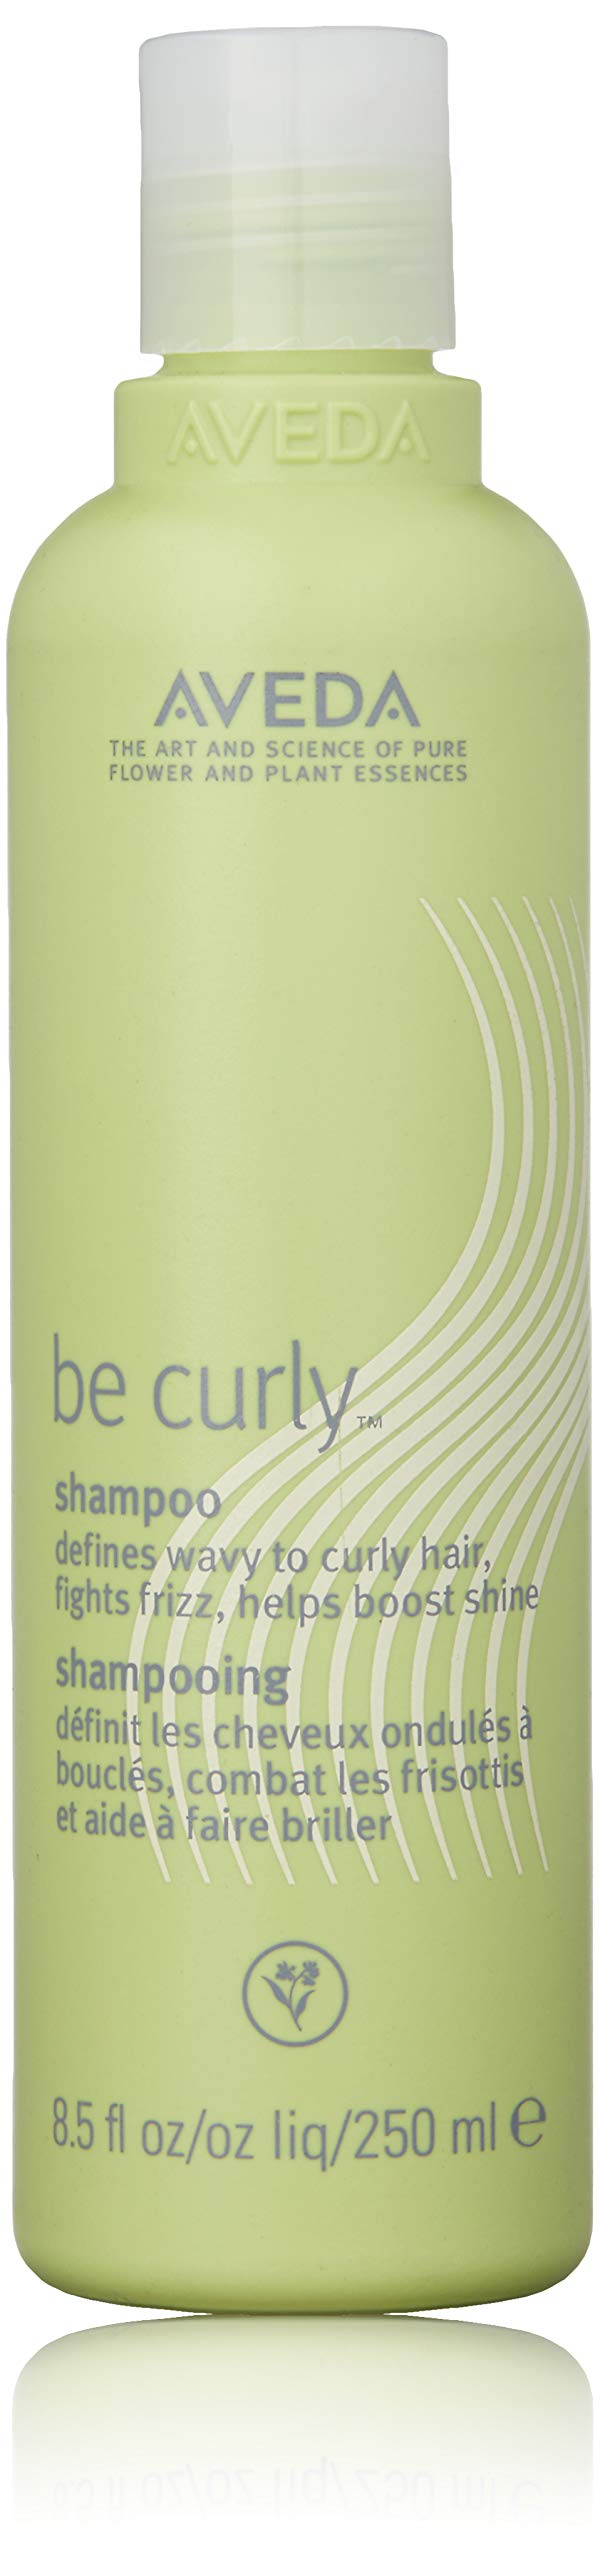 Aveda Be Curly Shampoo 8.5-Ounce Bottle